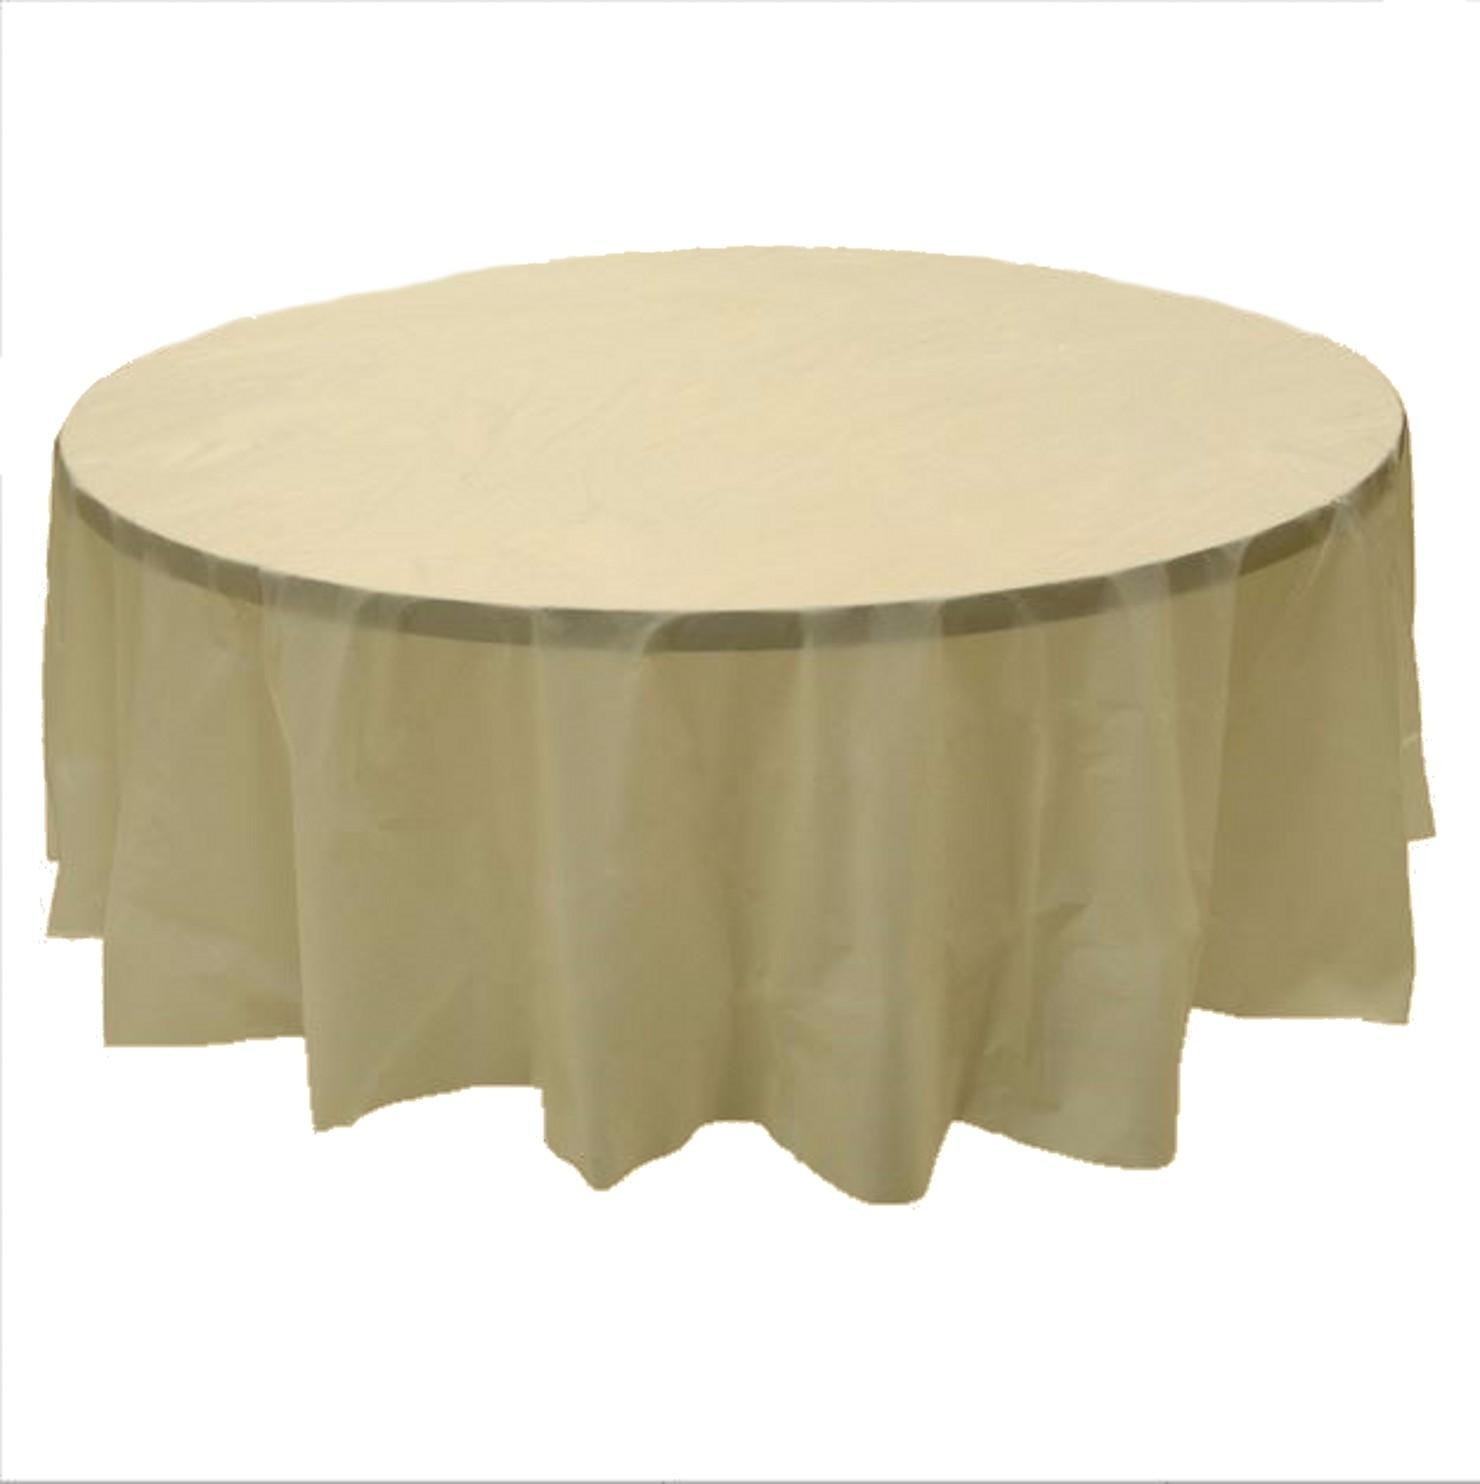 Beige Plastic Round Tablecloths Diameter Table Cover